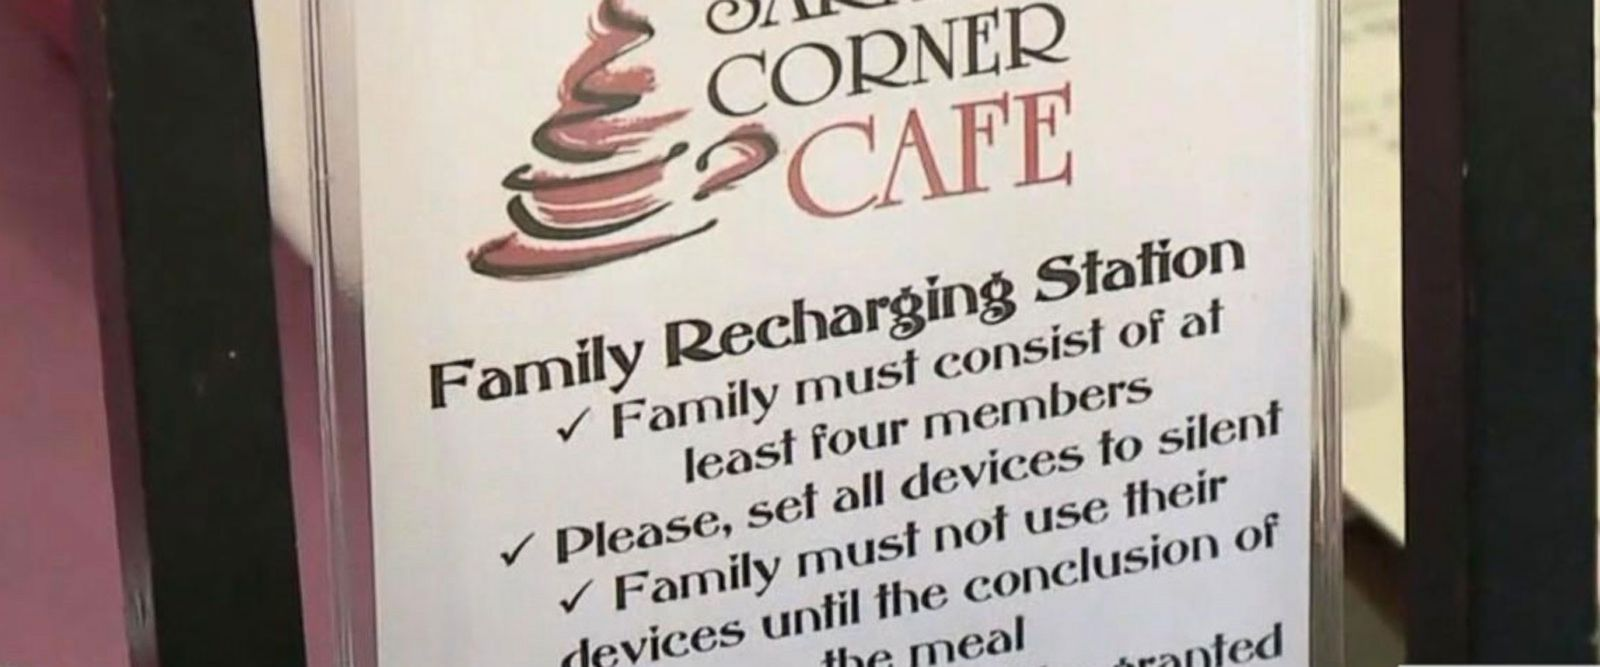 VIDEO: Pennsylvania restaurant offers discount for families who have 'phone-free meals'